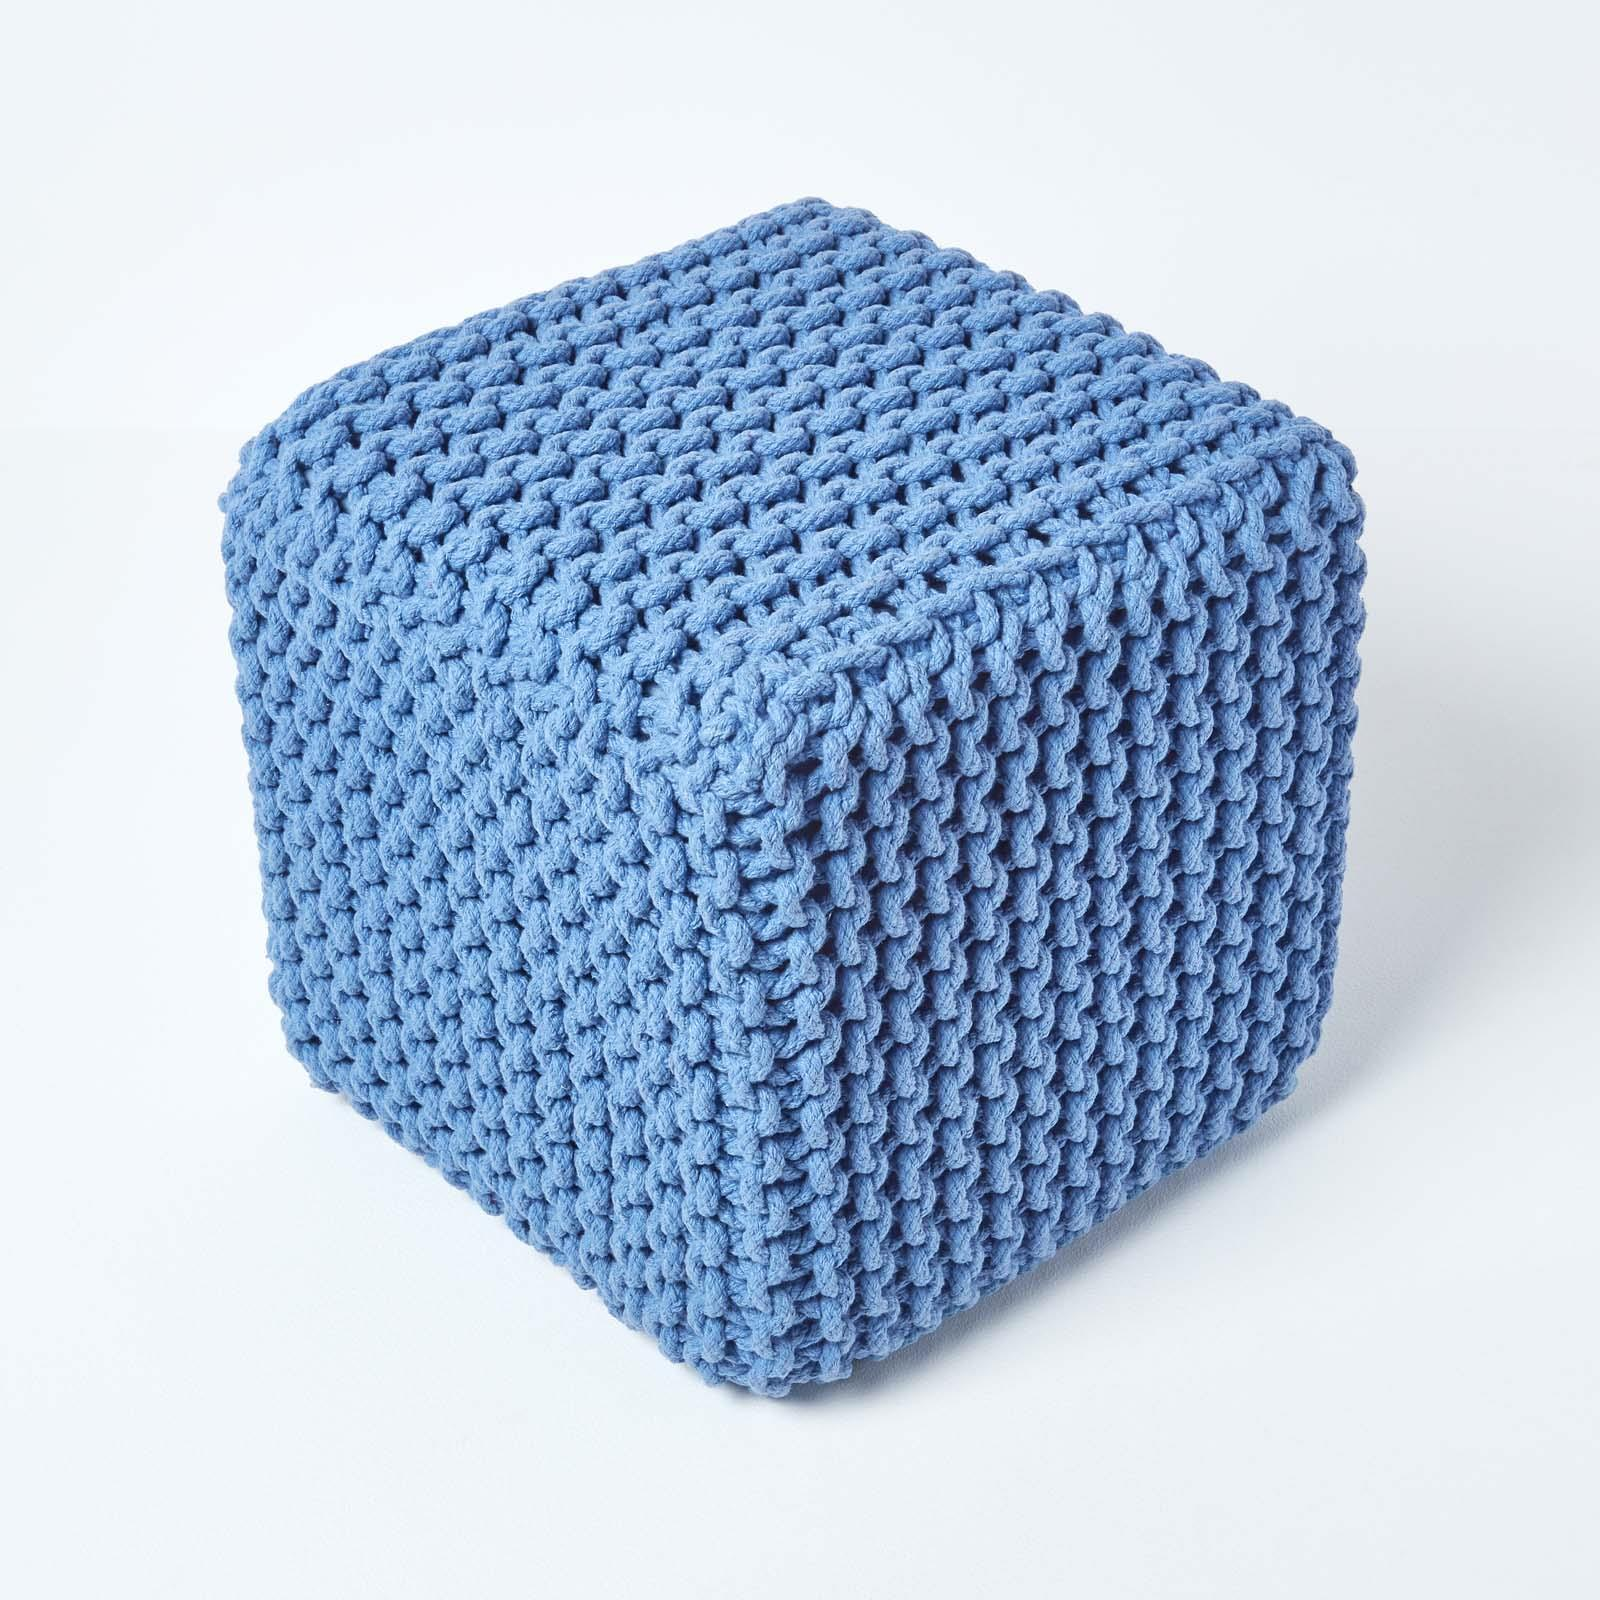 Hand-Knitted-100-Cotton-Pouffes-Round-Sphere-Or-Cube-Square-Chunky-Footstools thumbnail 23